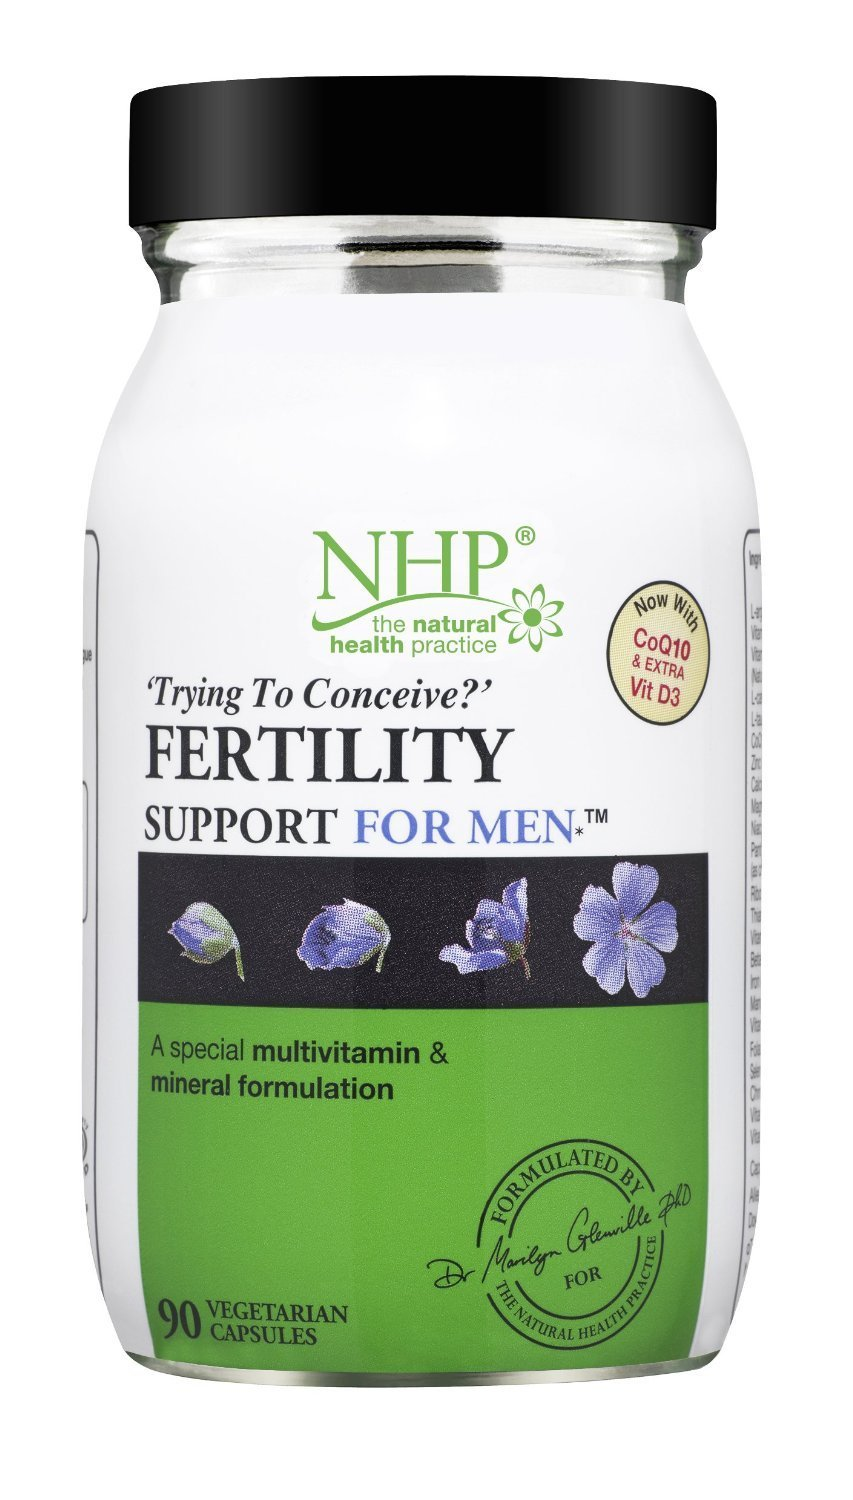 (6 PACK) - Nhp Fertility Support For Men Capsules | 90s | 6 PACK - SUPER SAVER - SAVE MONEY